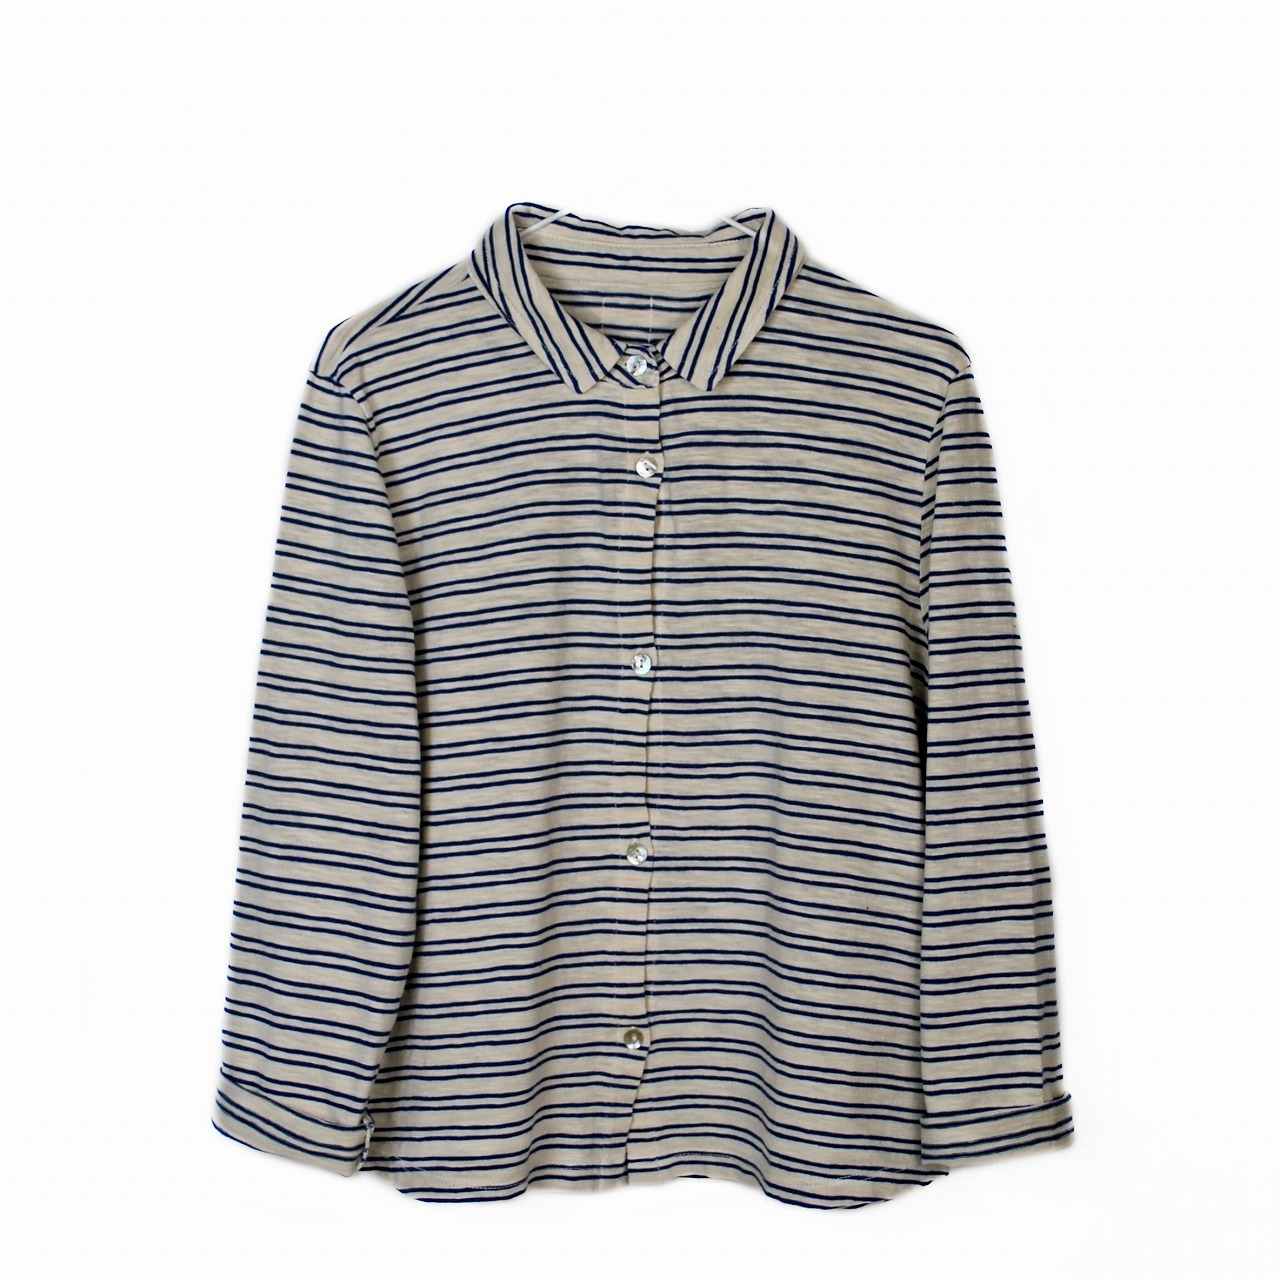 《LE PETIT GERMAIN 2017AW》POLI Striped boy shirt / Hot Milk